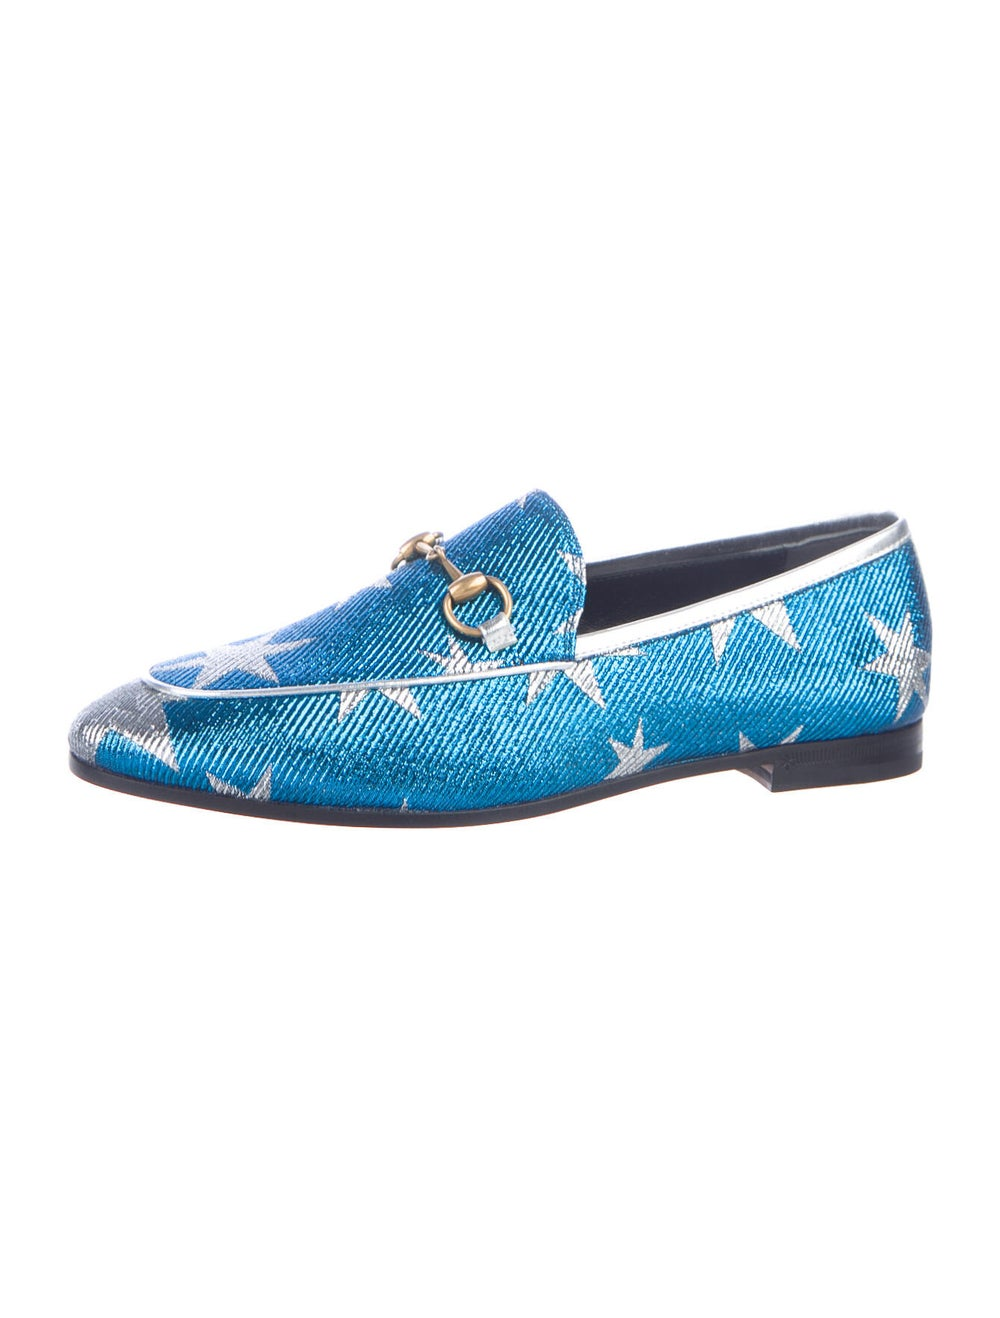 Gucci Horsebit Accent Patterned Loafers w/ Tags B… - image 2